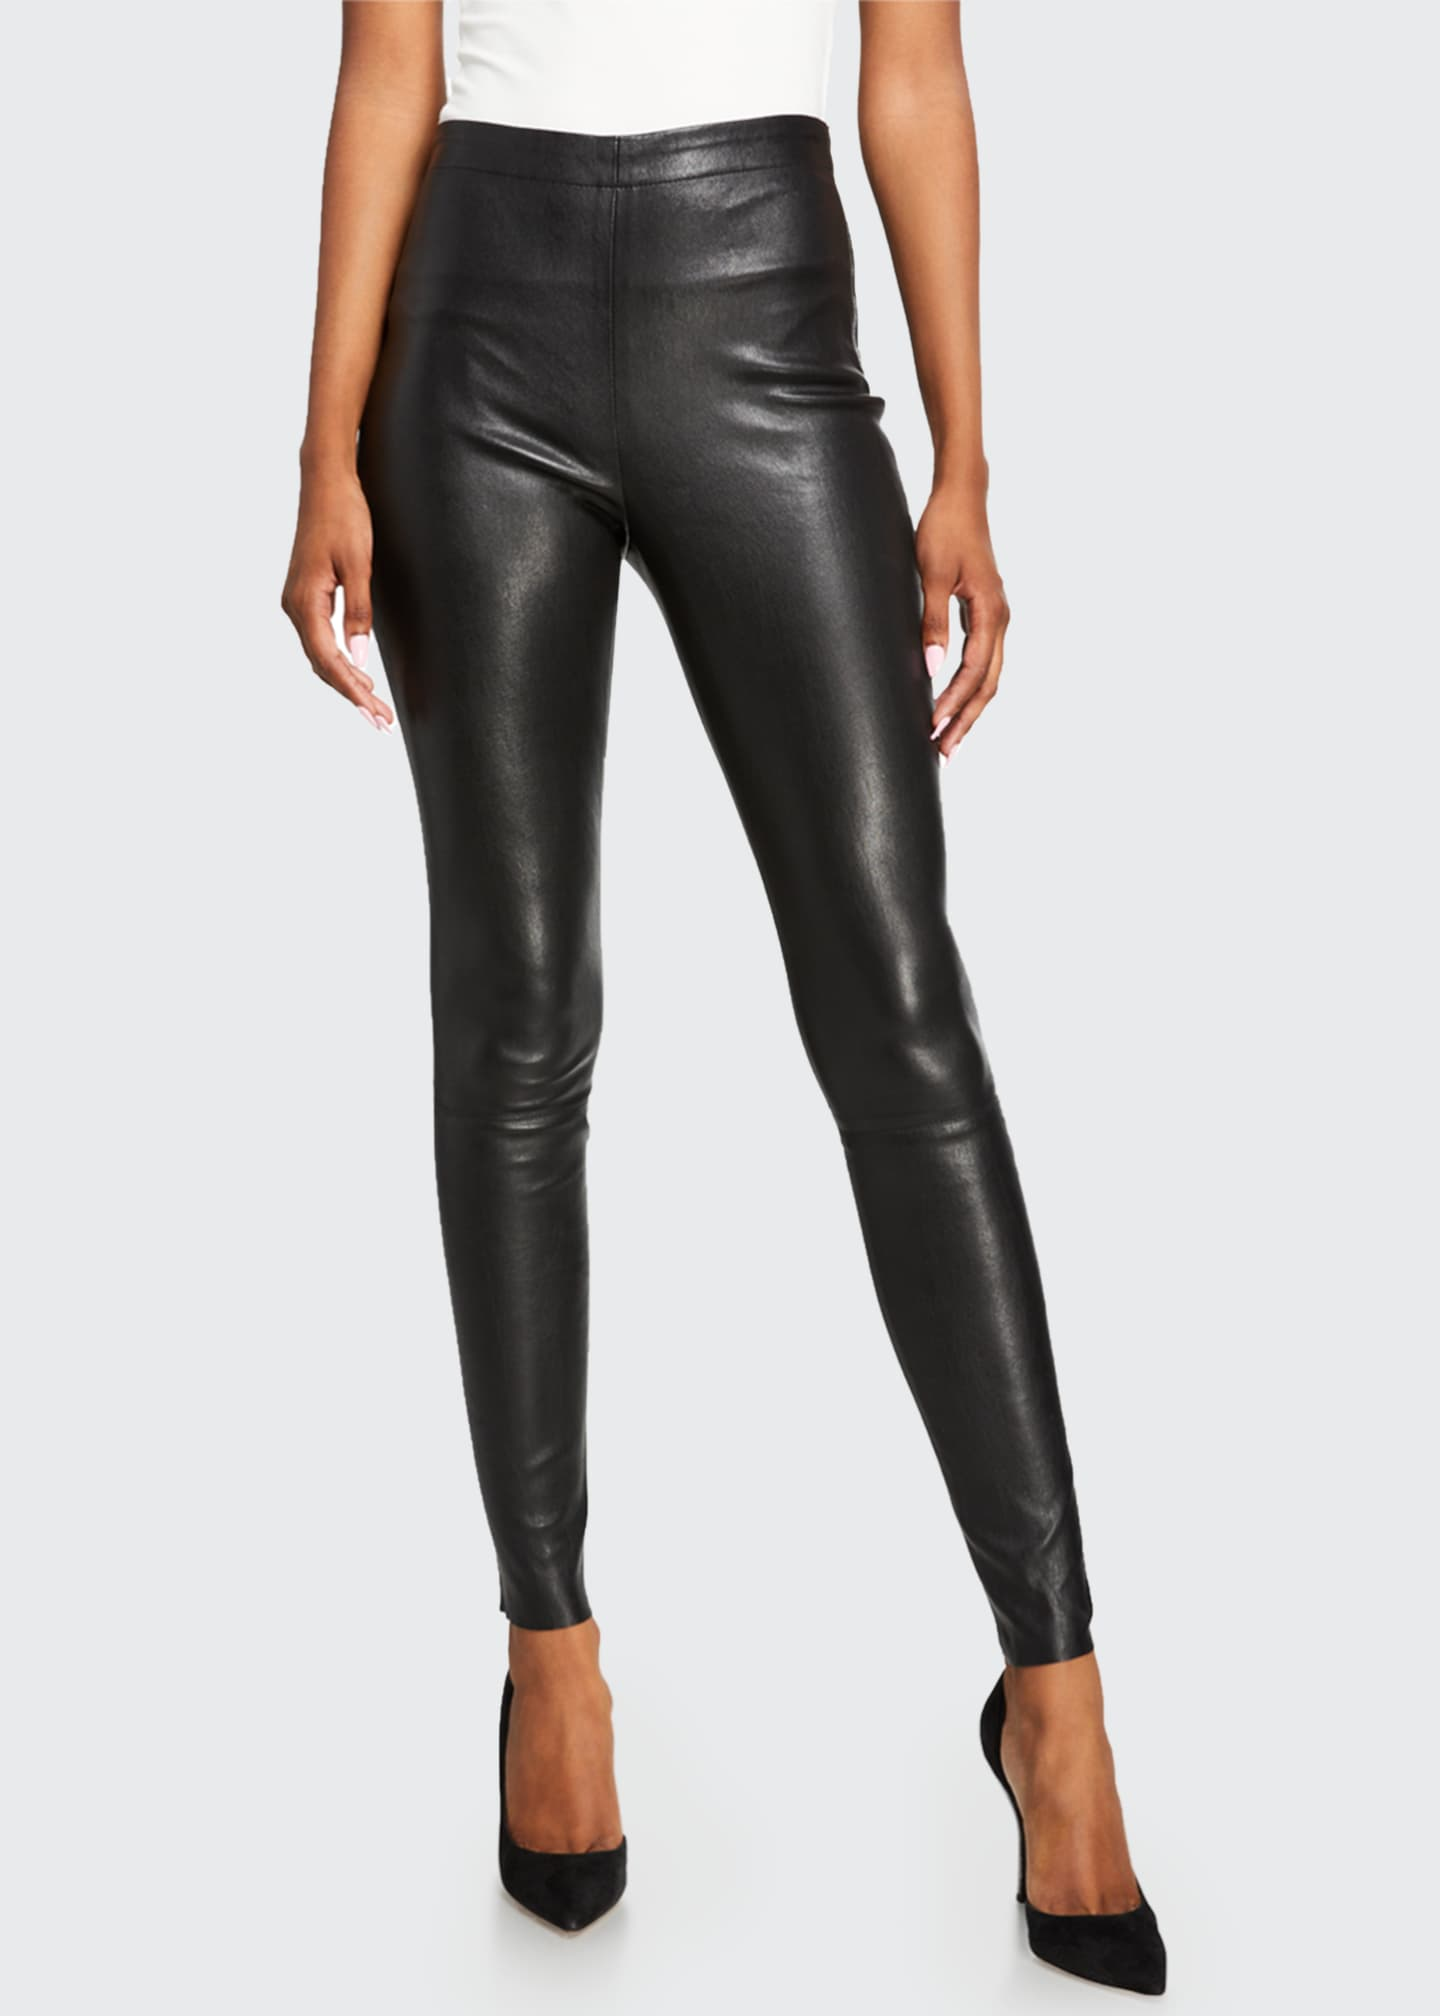 Image 3 of 3: Maddox Leather High-Waist Side Zip Leggings